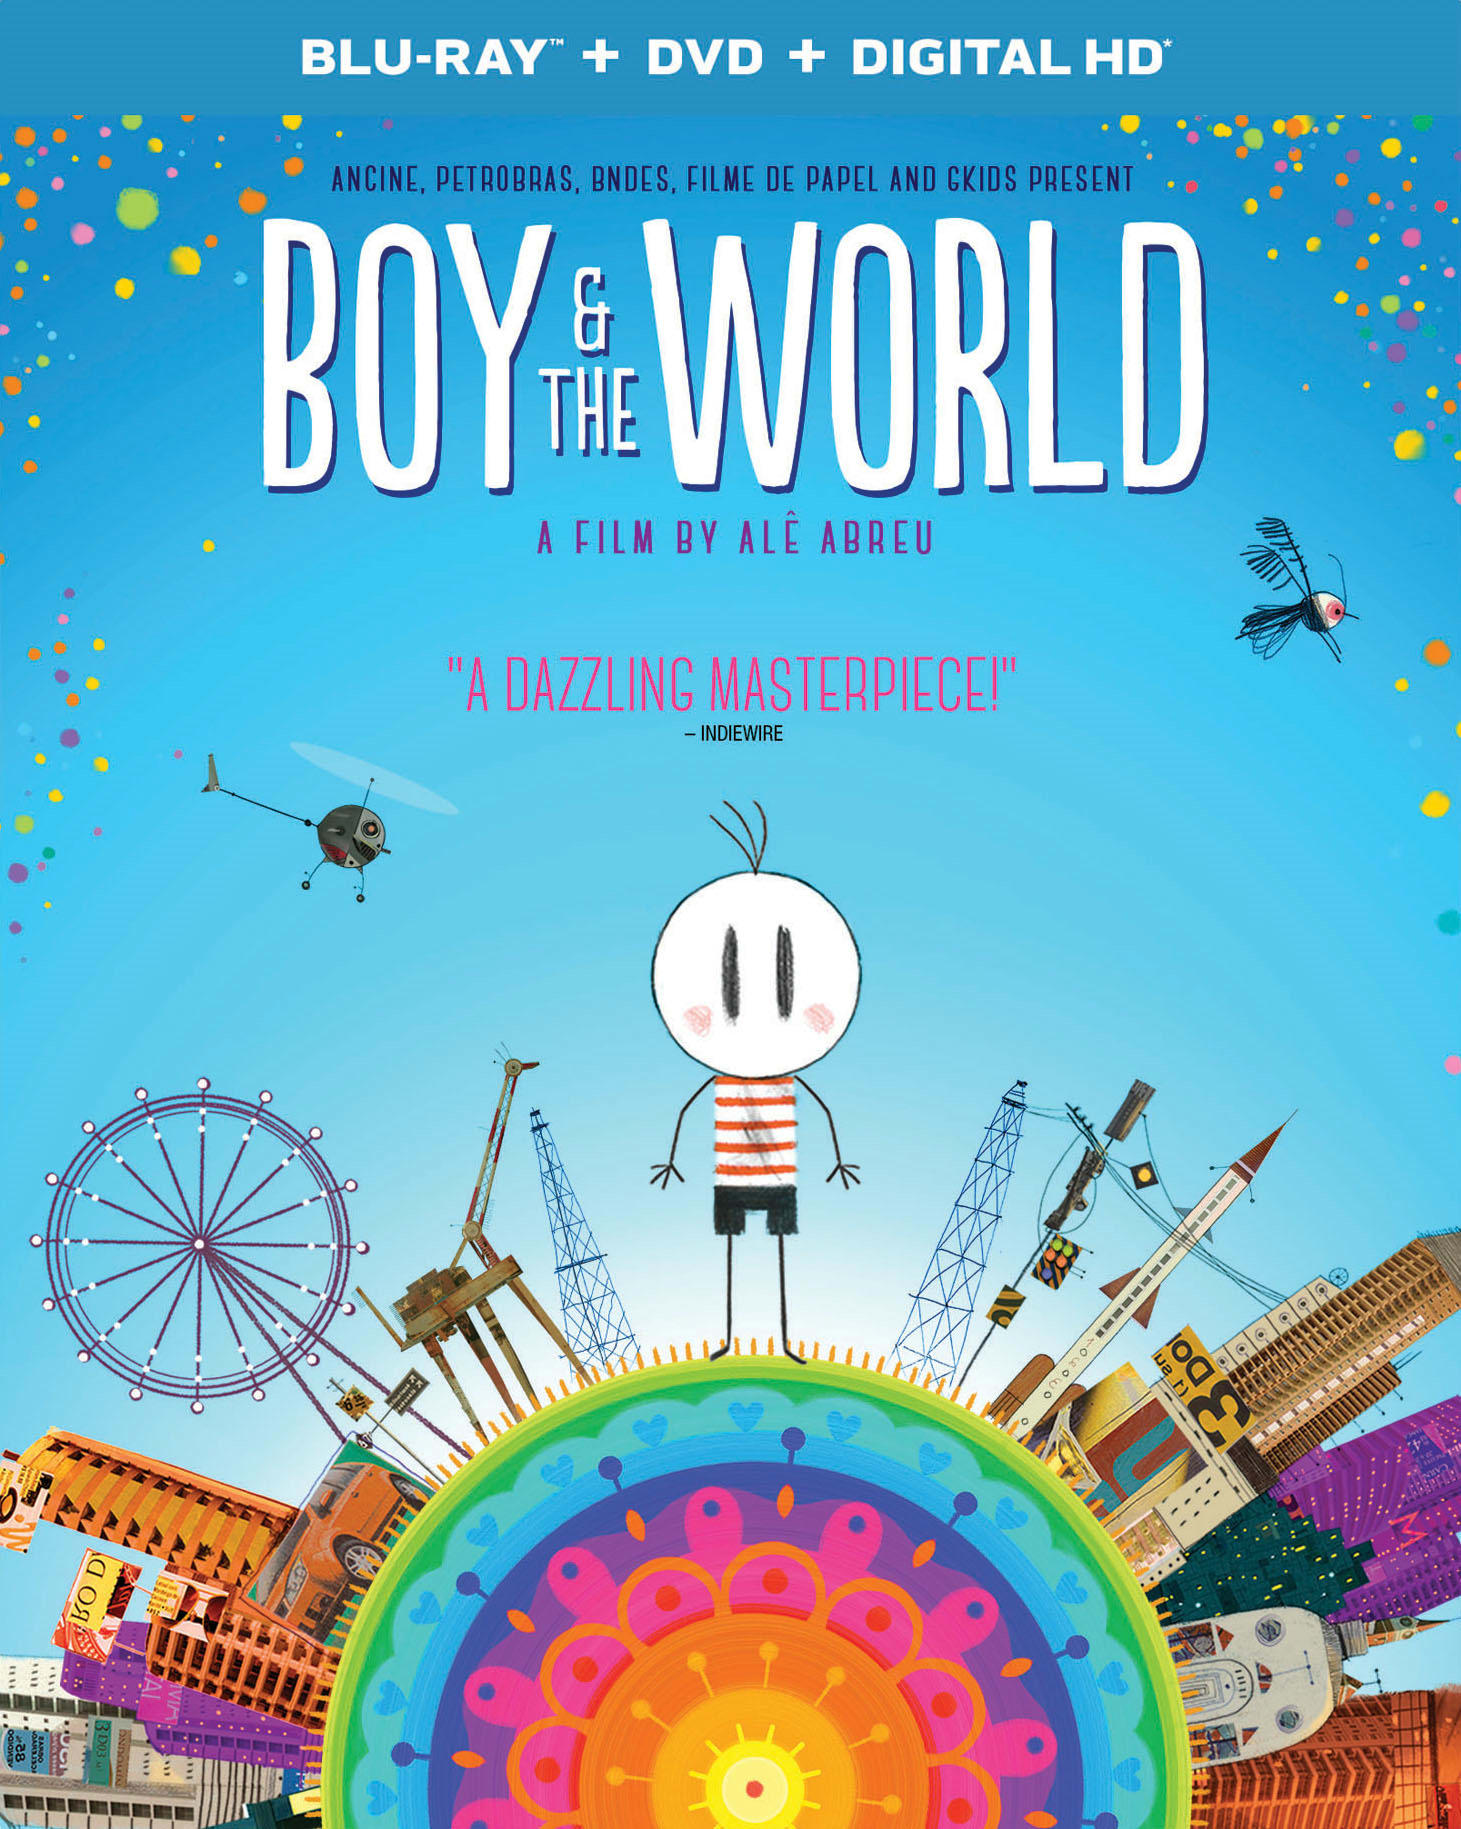 Boy and the World (DVD + Digital) [Blu-ray]